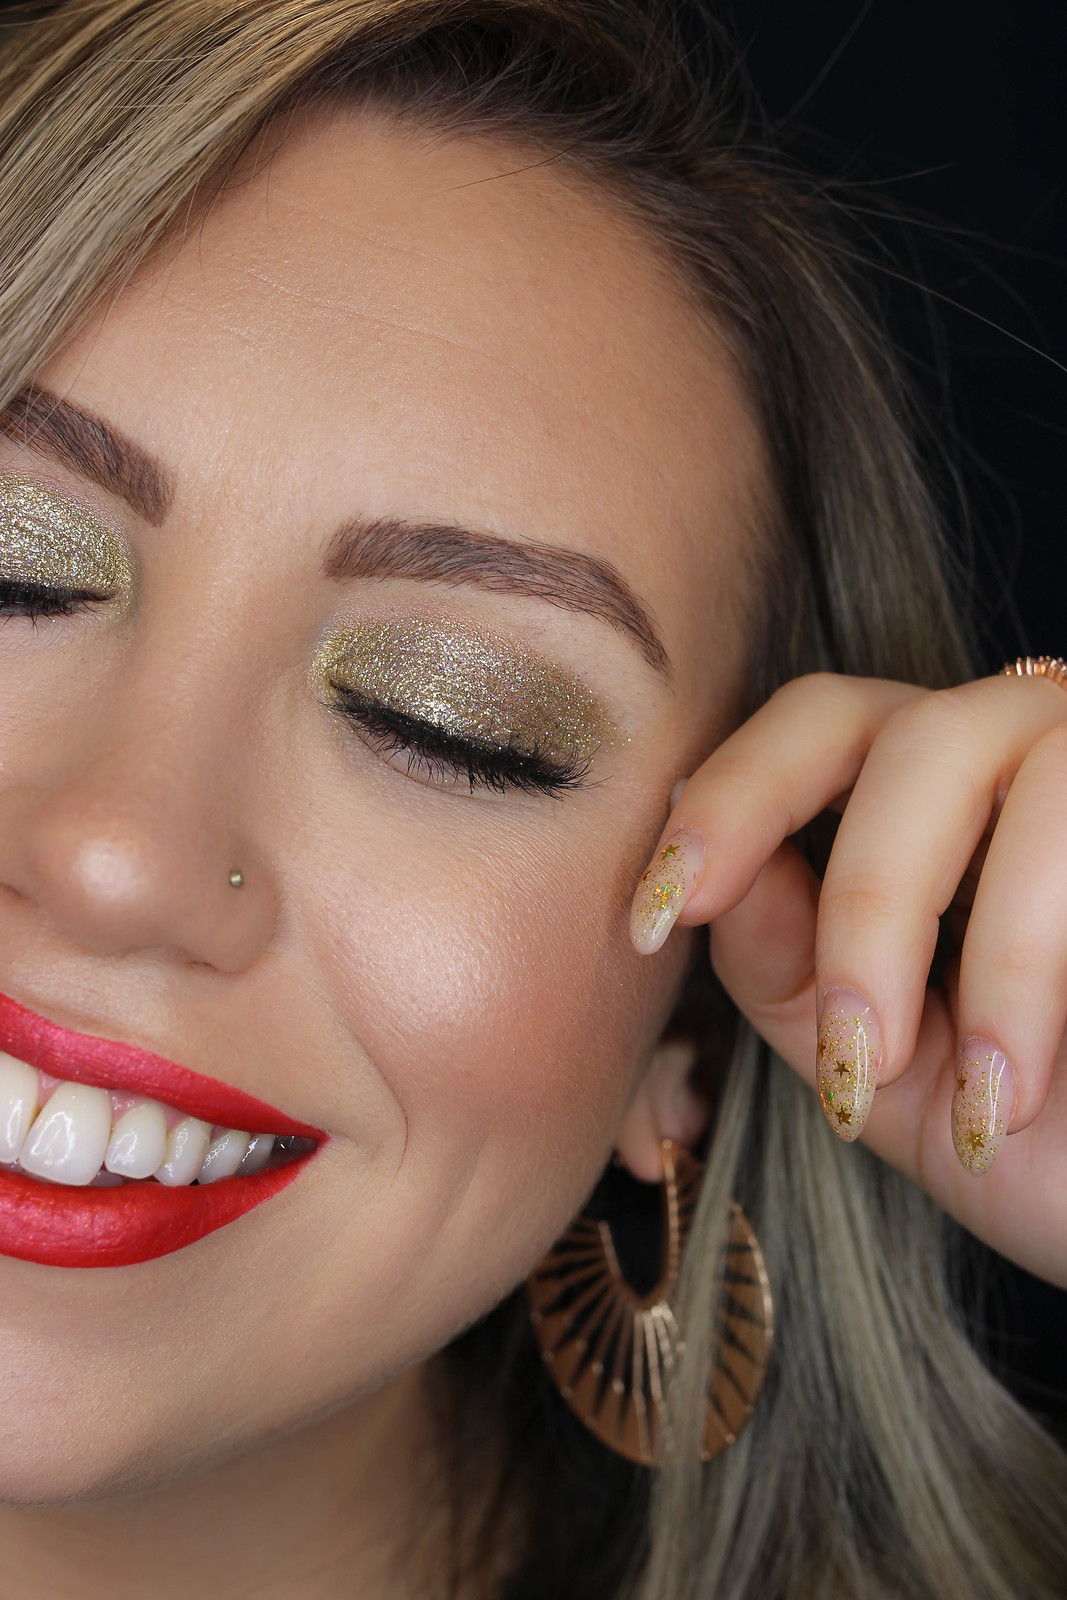 Gold Glitter Makeup Tutorial | How to Apply Gold Glitter Eyeshadow